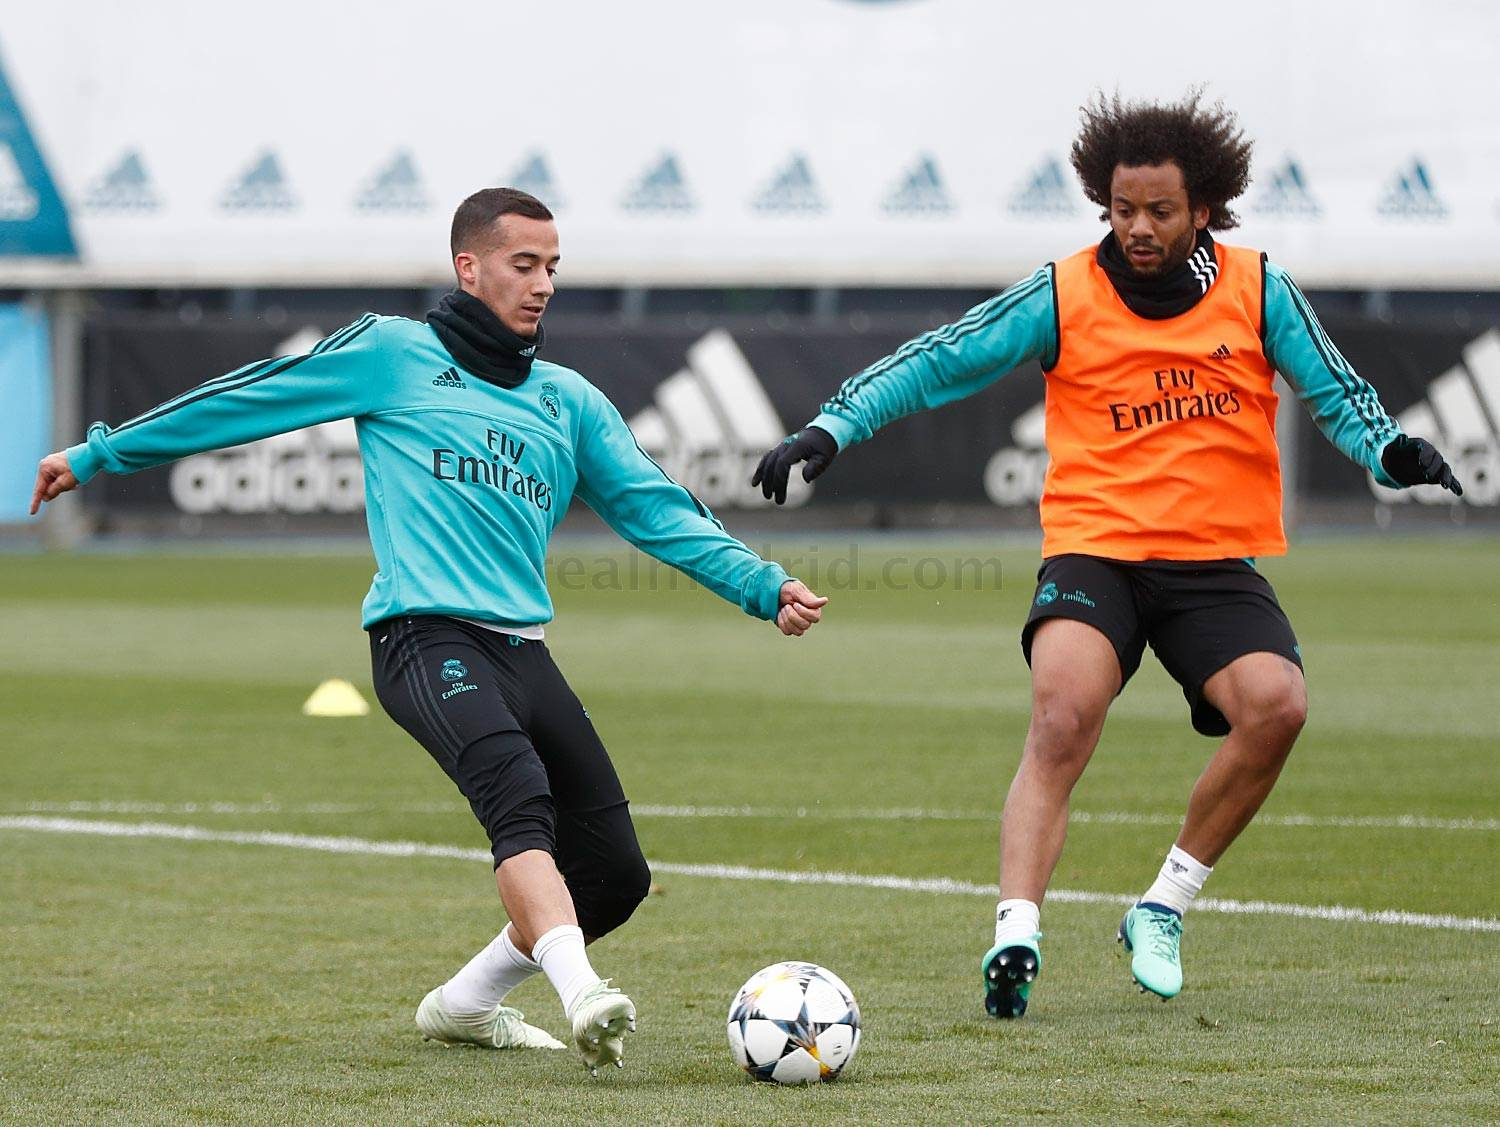 Real Madrid - Entrenamiento del Real Madrid - 29-04-2018